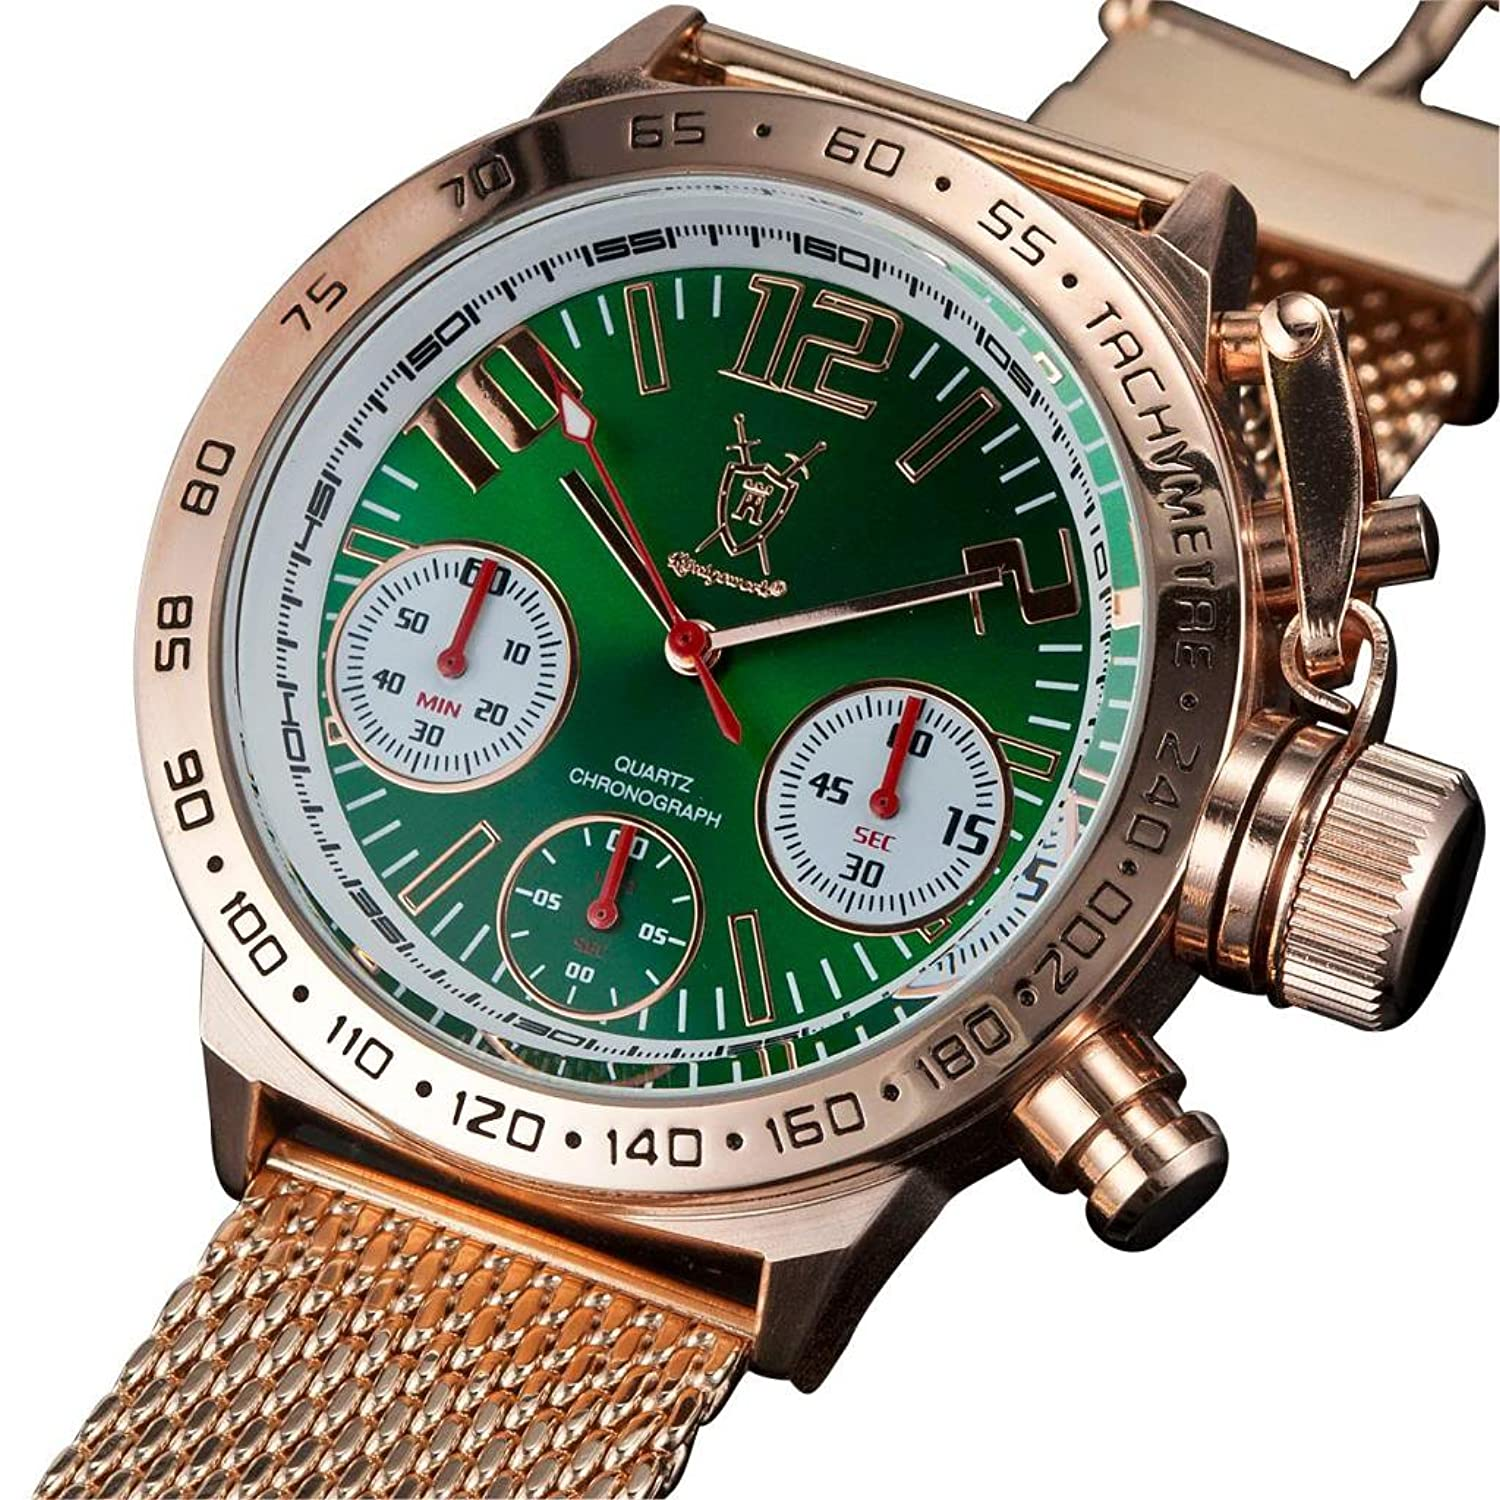 dial gold watches com amazon bracelet watch konigswerk dp s chronograph men rose mens green